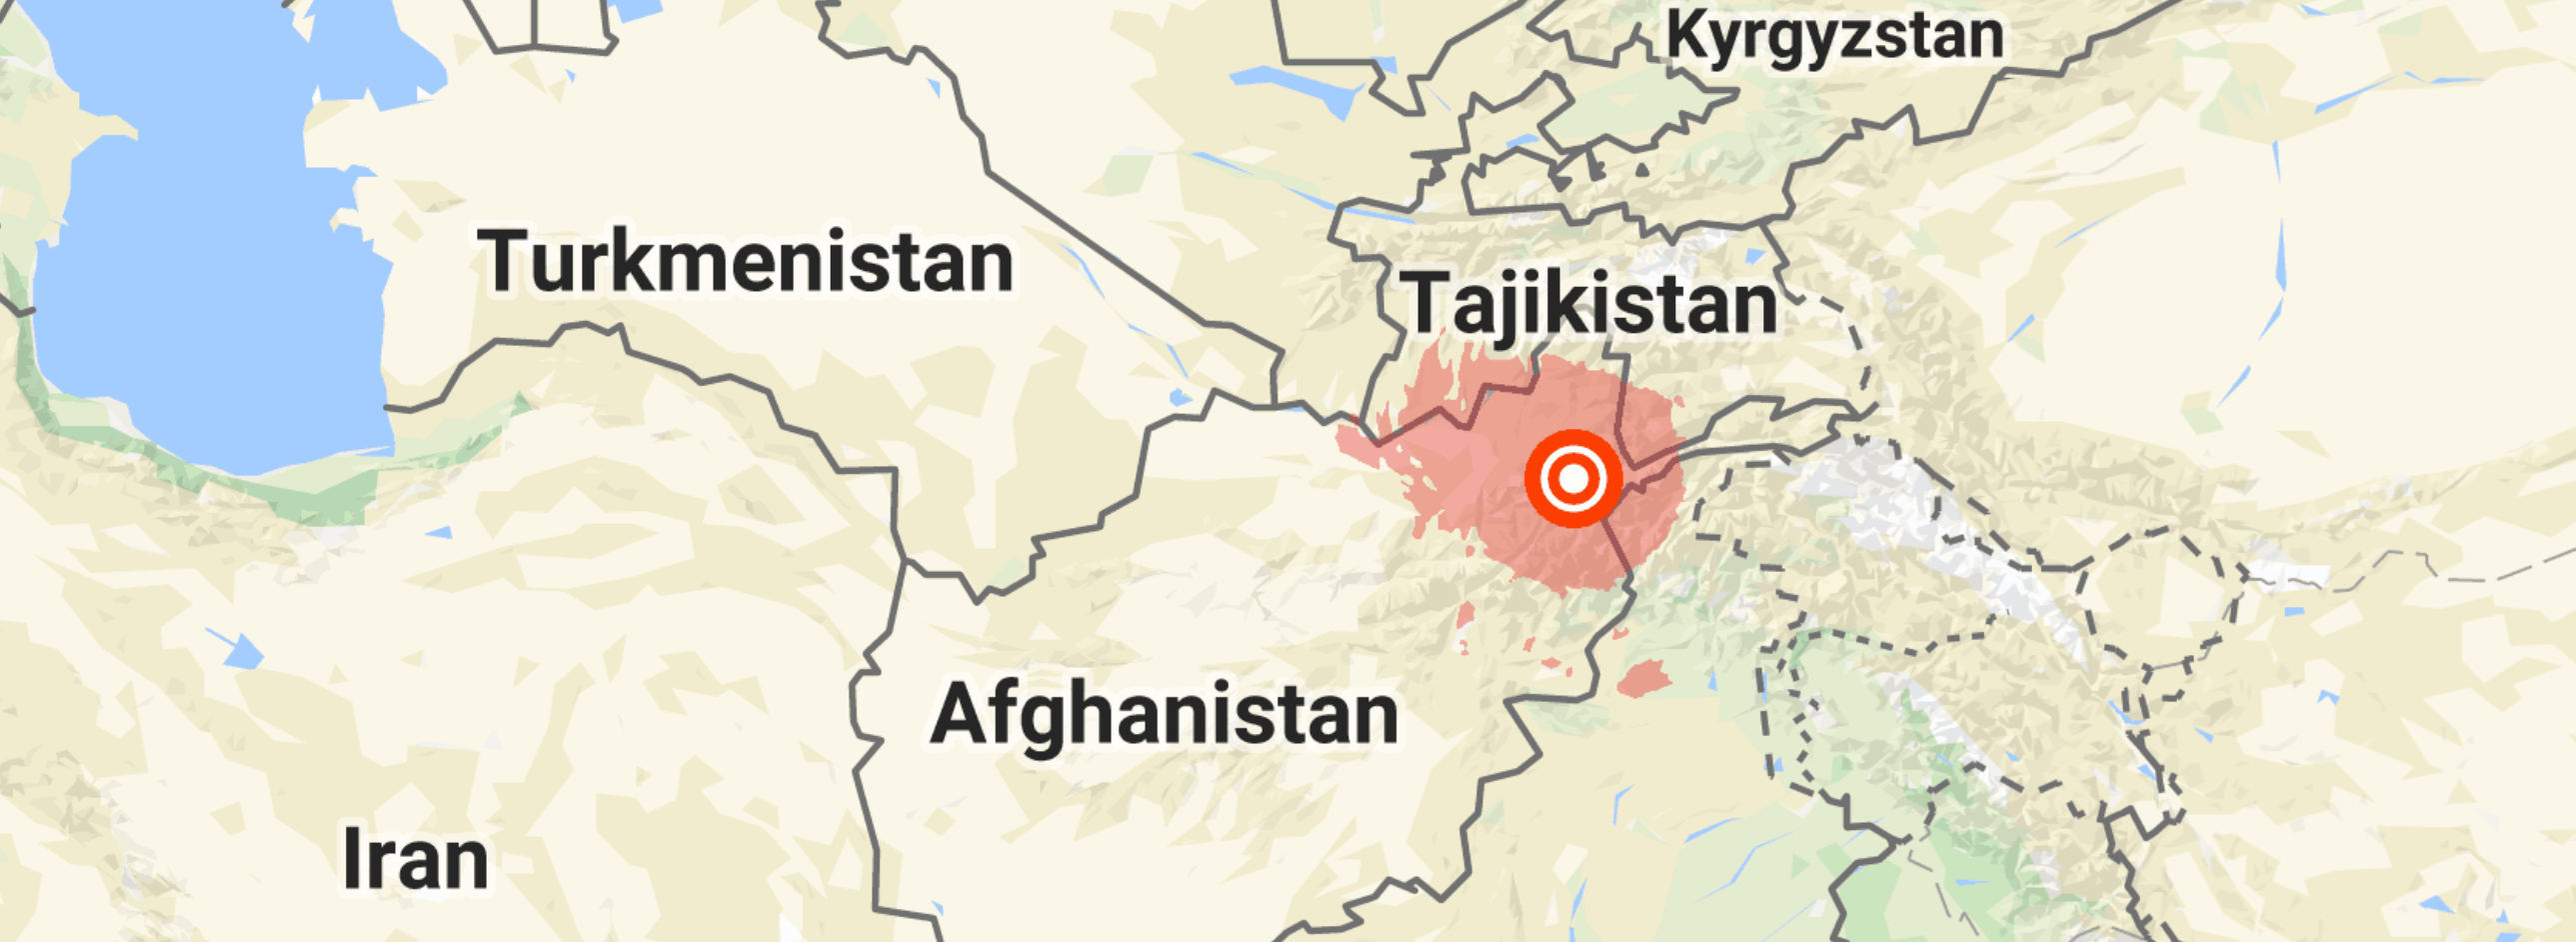 Earthquake of magnitude 61 strikes kabul the pawprint an earthquake of magnitude 61 struck 270 kilometers northeast of the afghan capital kabul on 31 january 2018 at 1140 am afghanistan time zone gumiabroncs Images